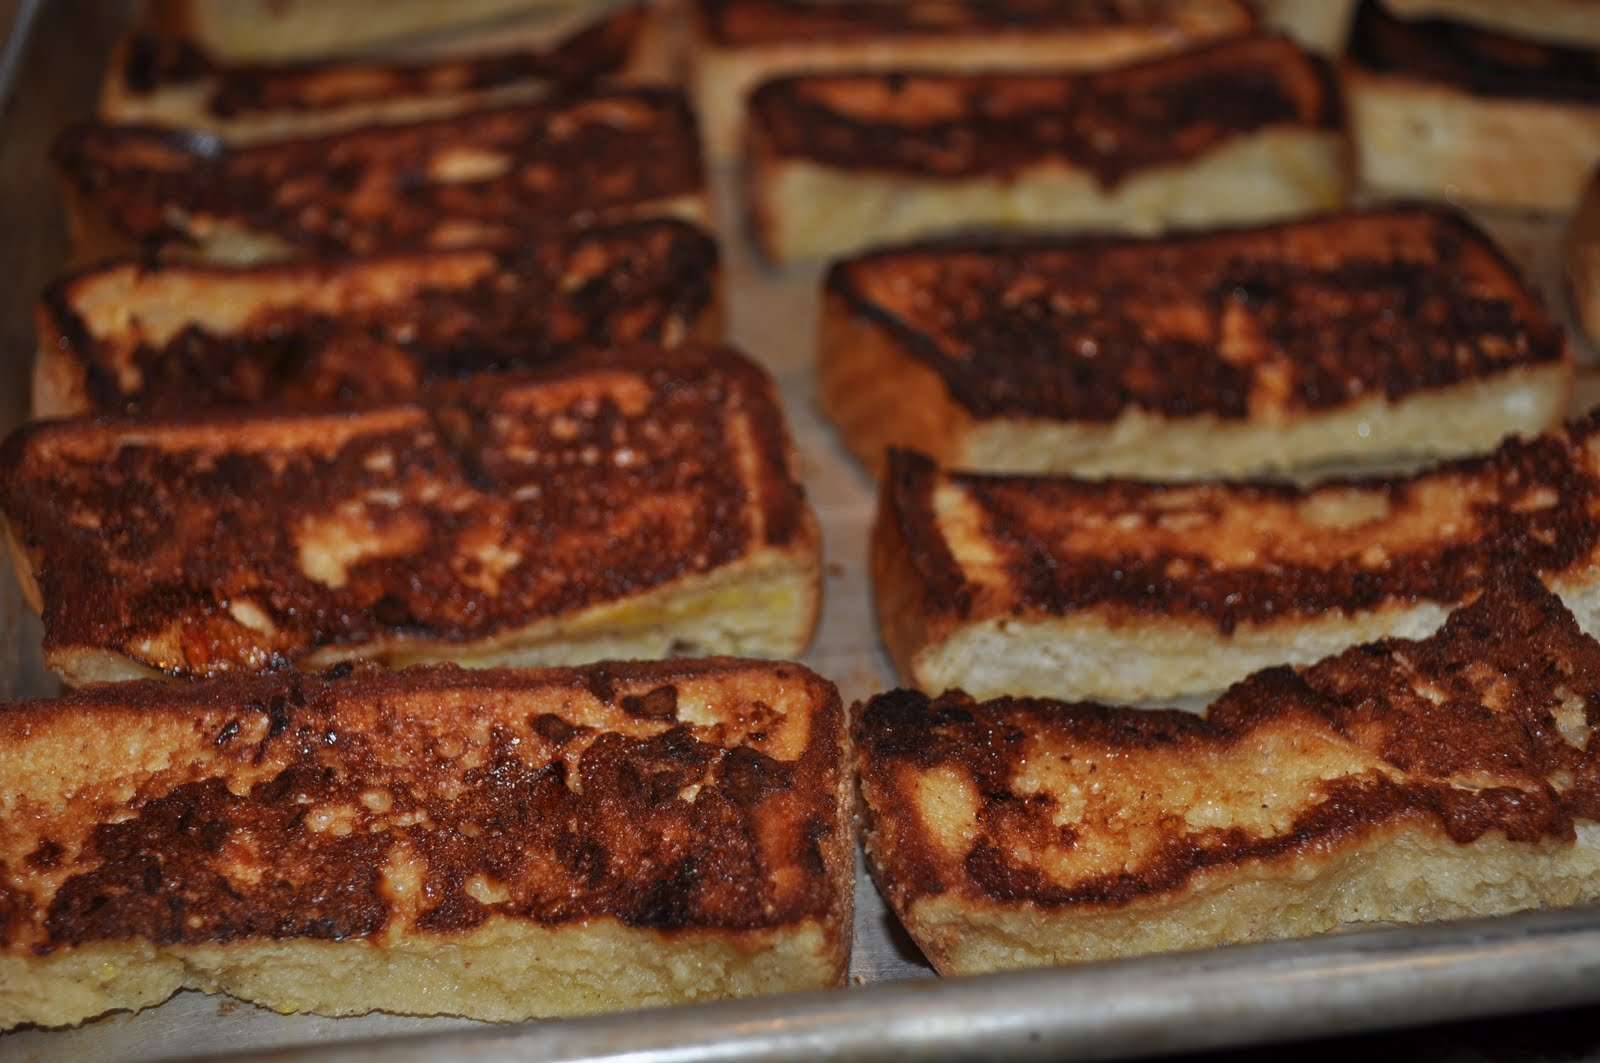 Baked French Toast Sticks They Were Easy To Make And Taste Wonderful I Put  Them In The Toaster Oven On